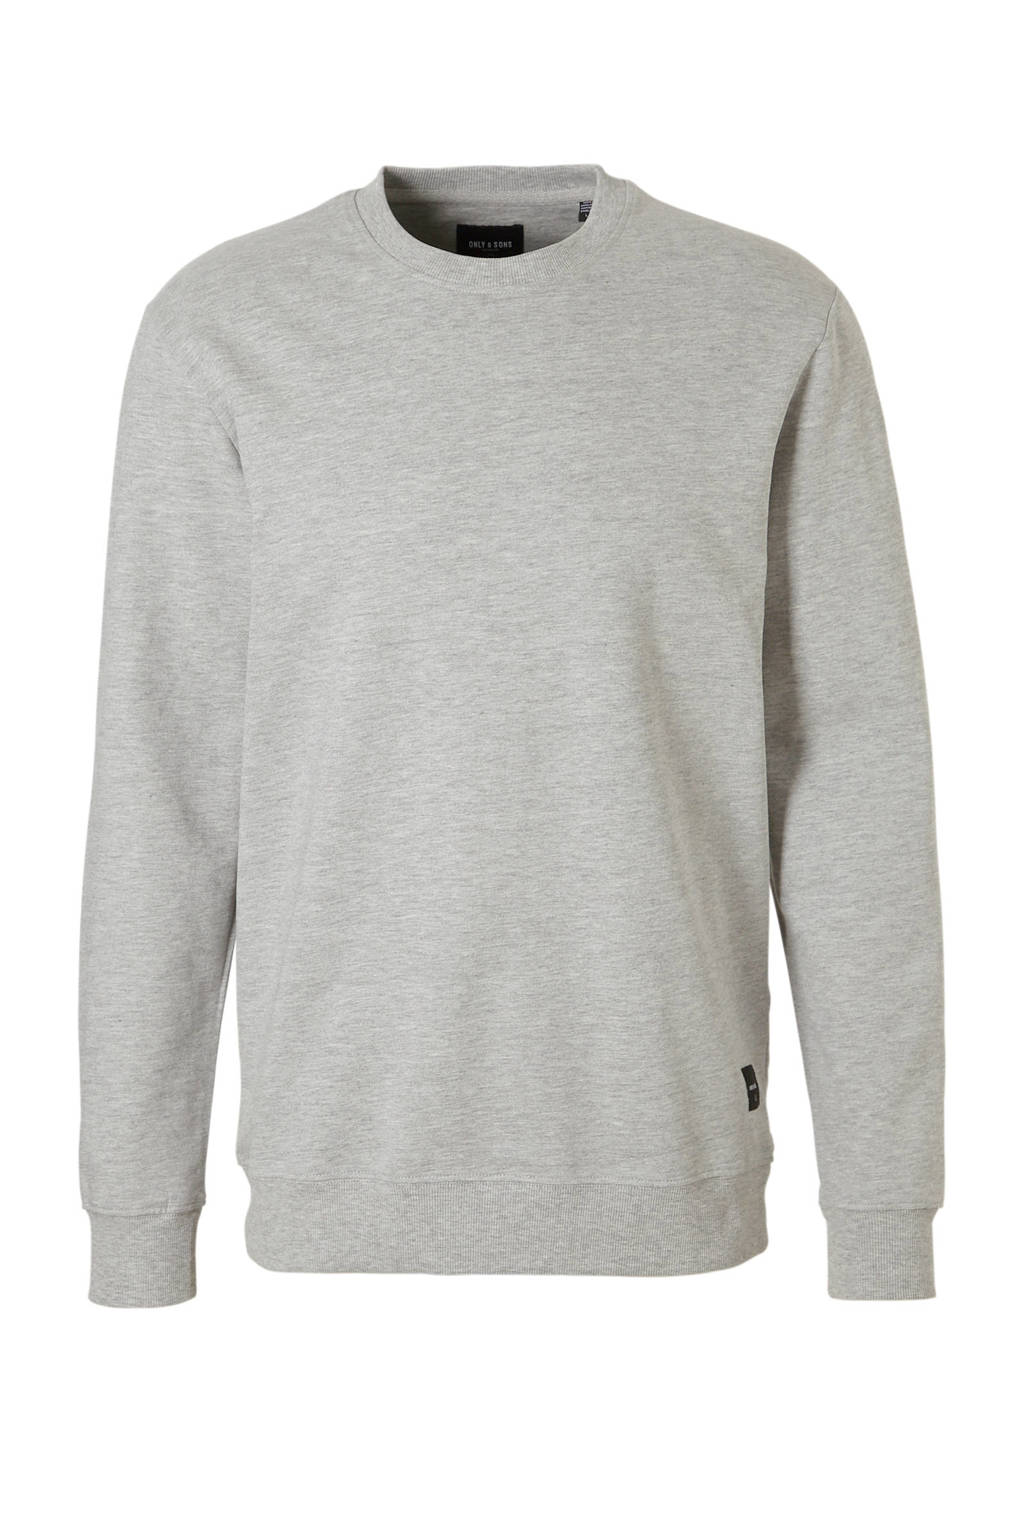 ONLY & SONS sweater, Grijs